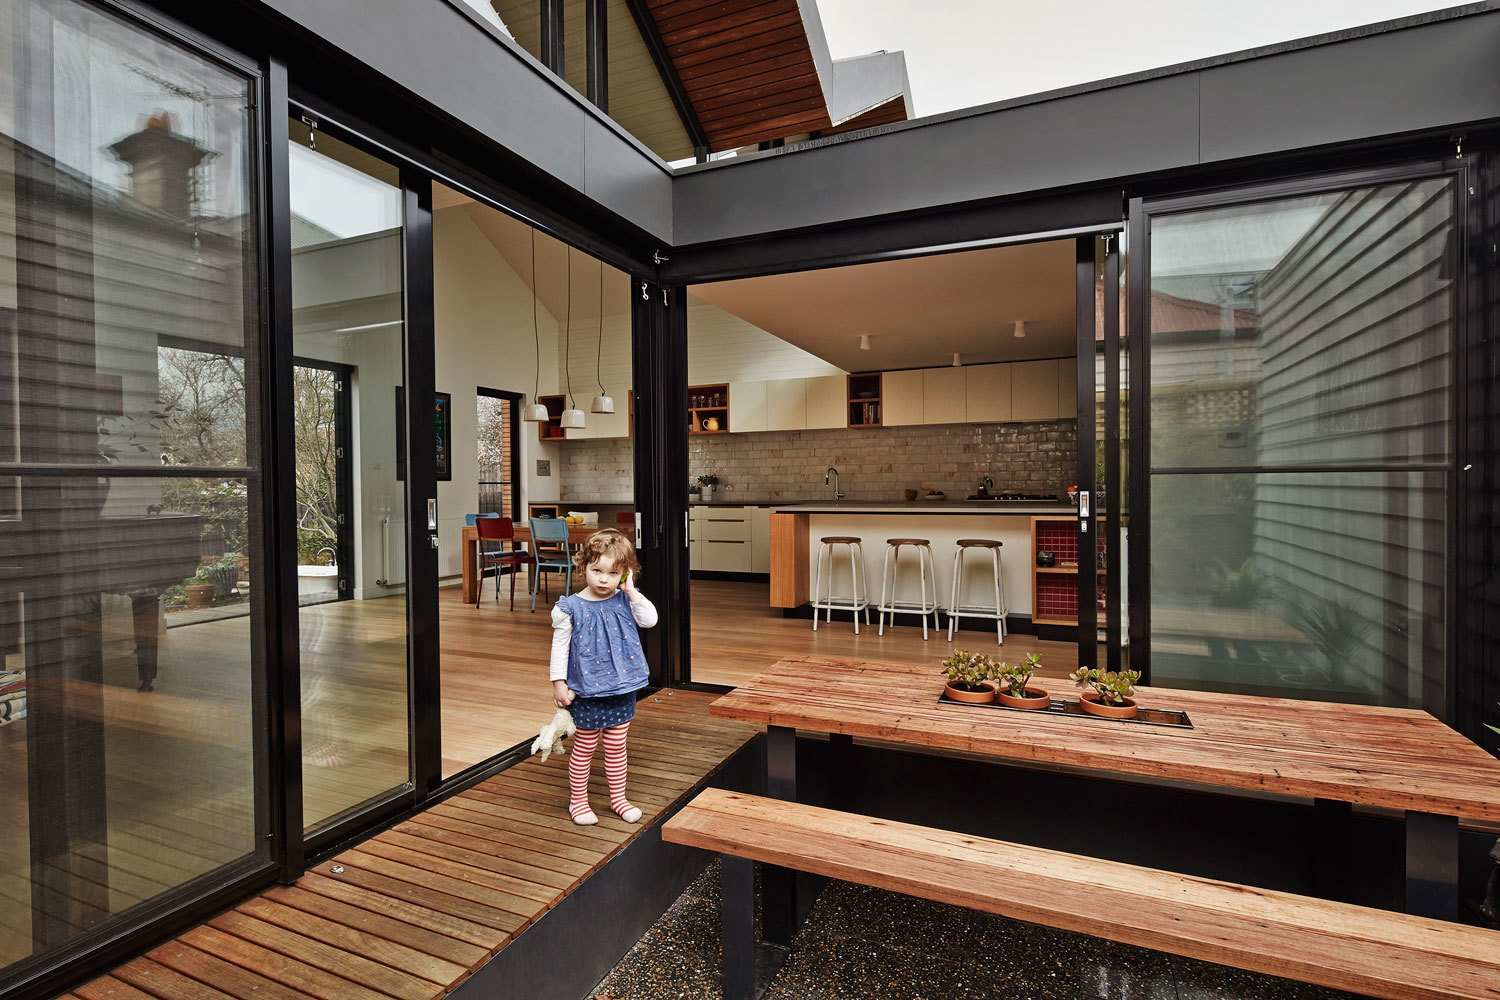 The architects pulled away the roof at the house's center to create a courtyard where the residents can enjoy meals. The ground sits below floor level, which means that the wraparound eucalyptus deck can also serve as a bench. Tagged: Outdoor, Wood Patio, Porch, Deck, and Small Patio, Porch, Deck. M House by Laura C. Mallonee